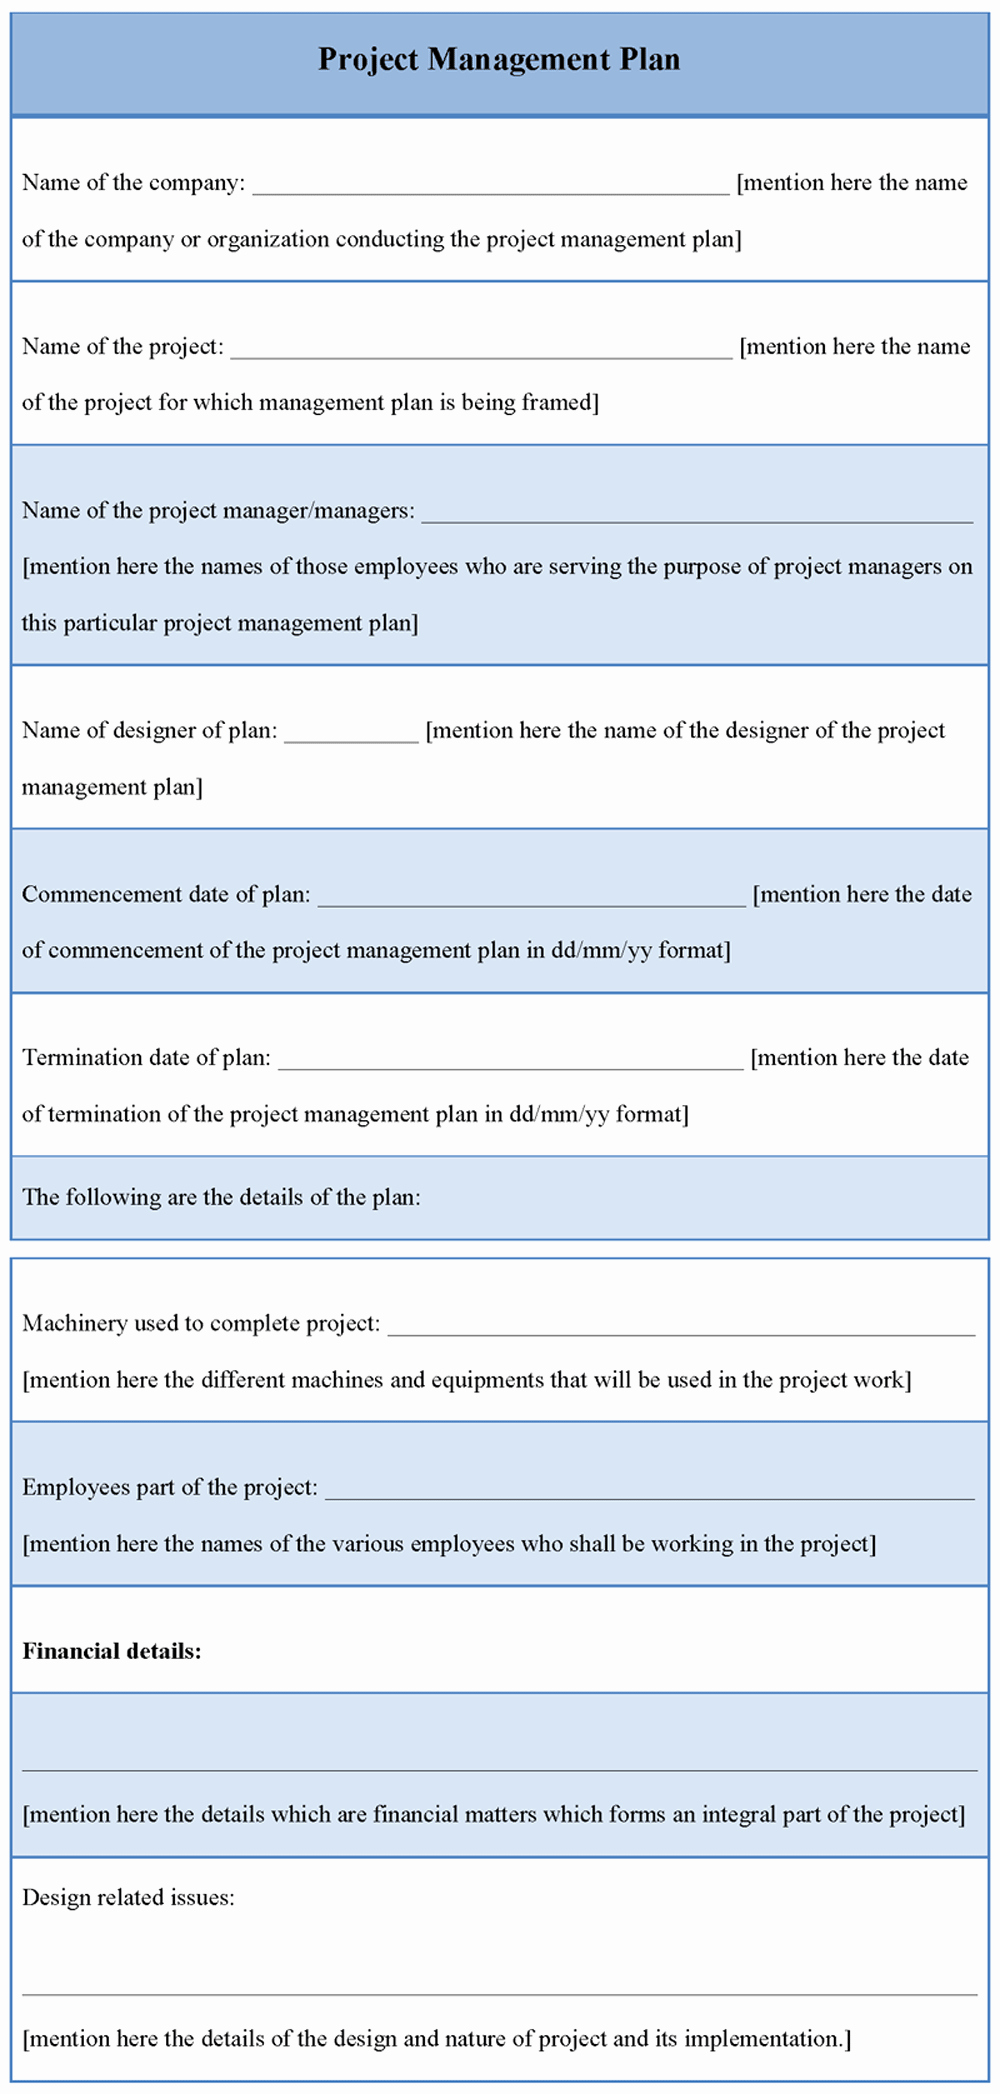 Project Management Plan Example Best Of Plan Template for Project Management Example Of Project